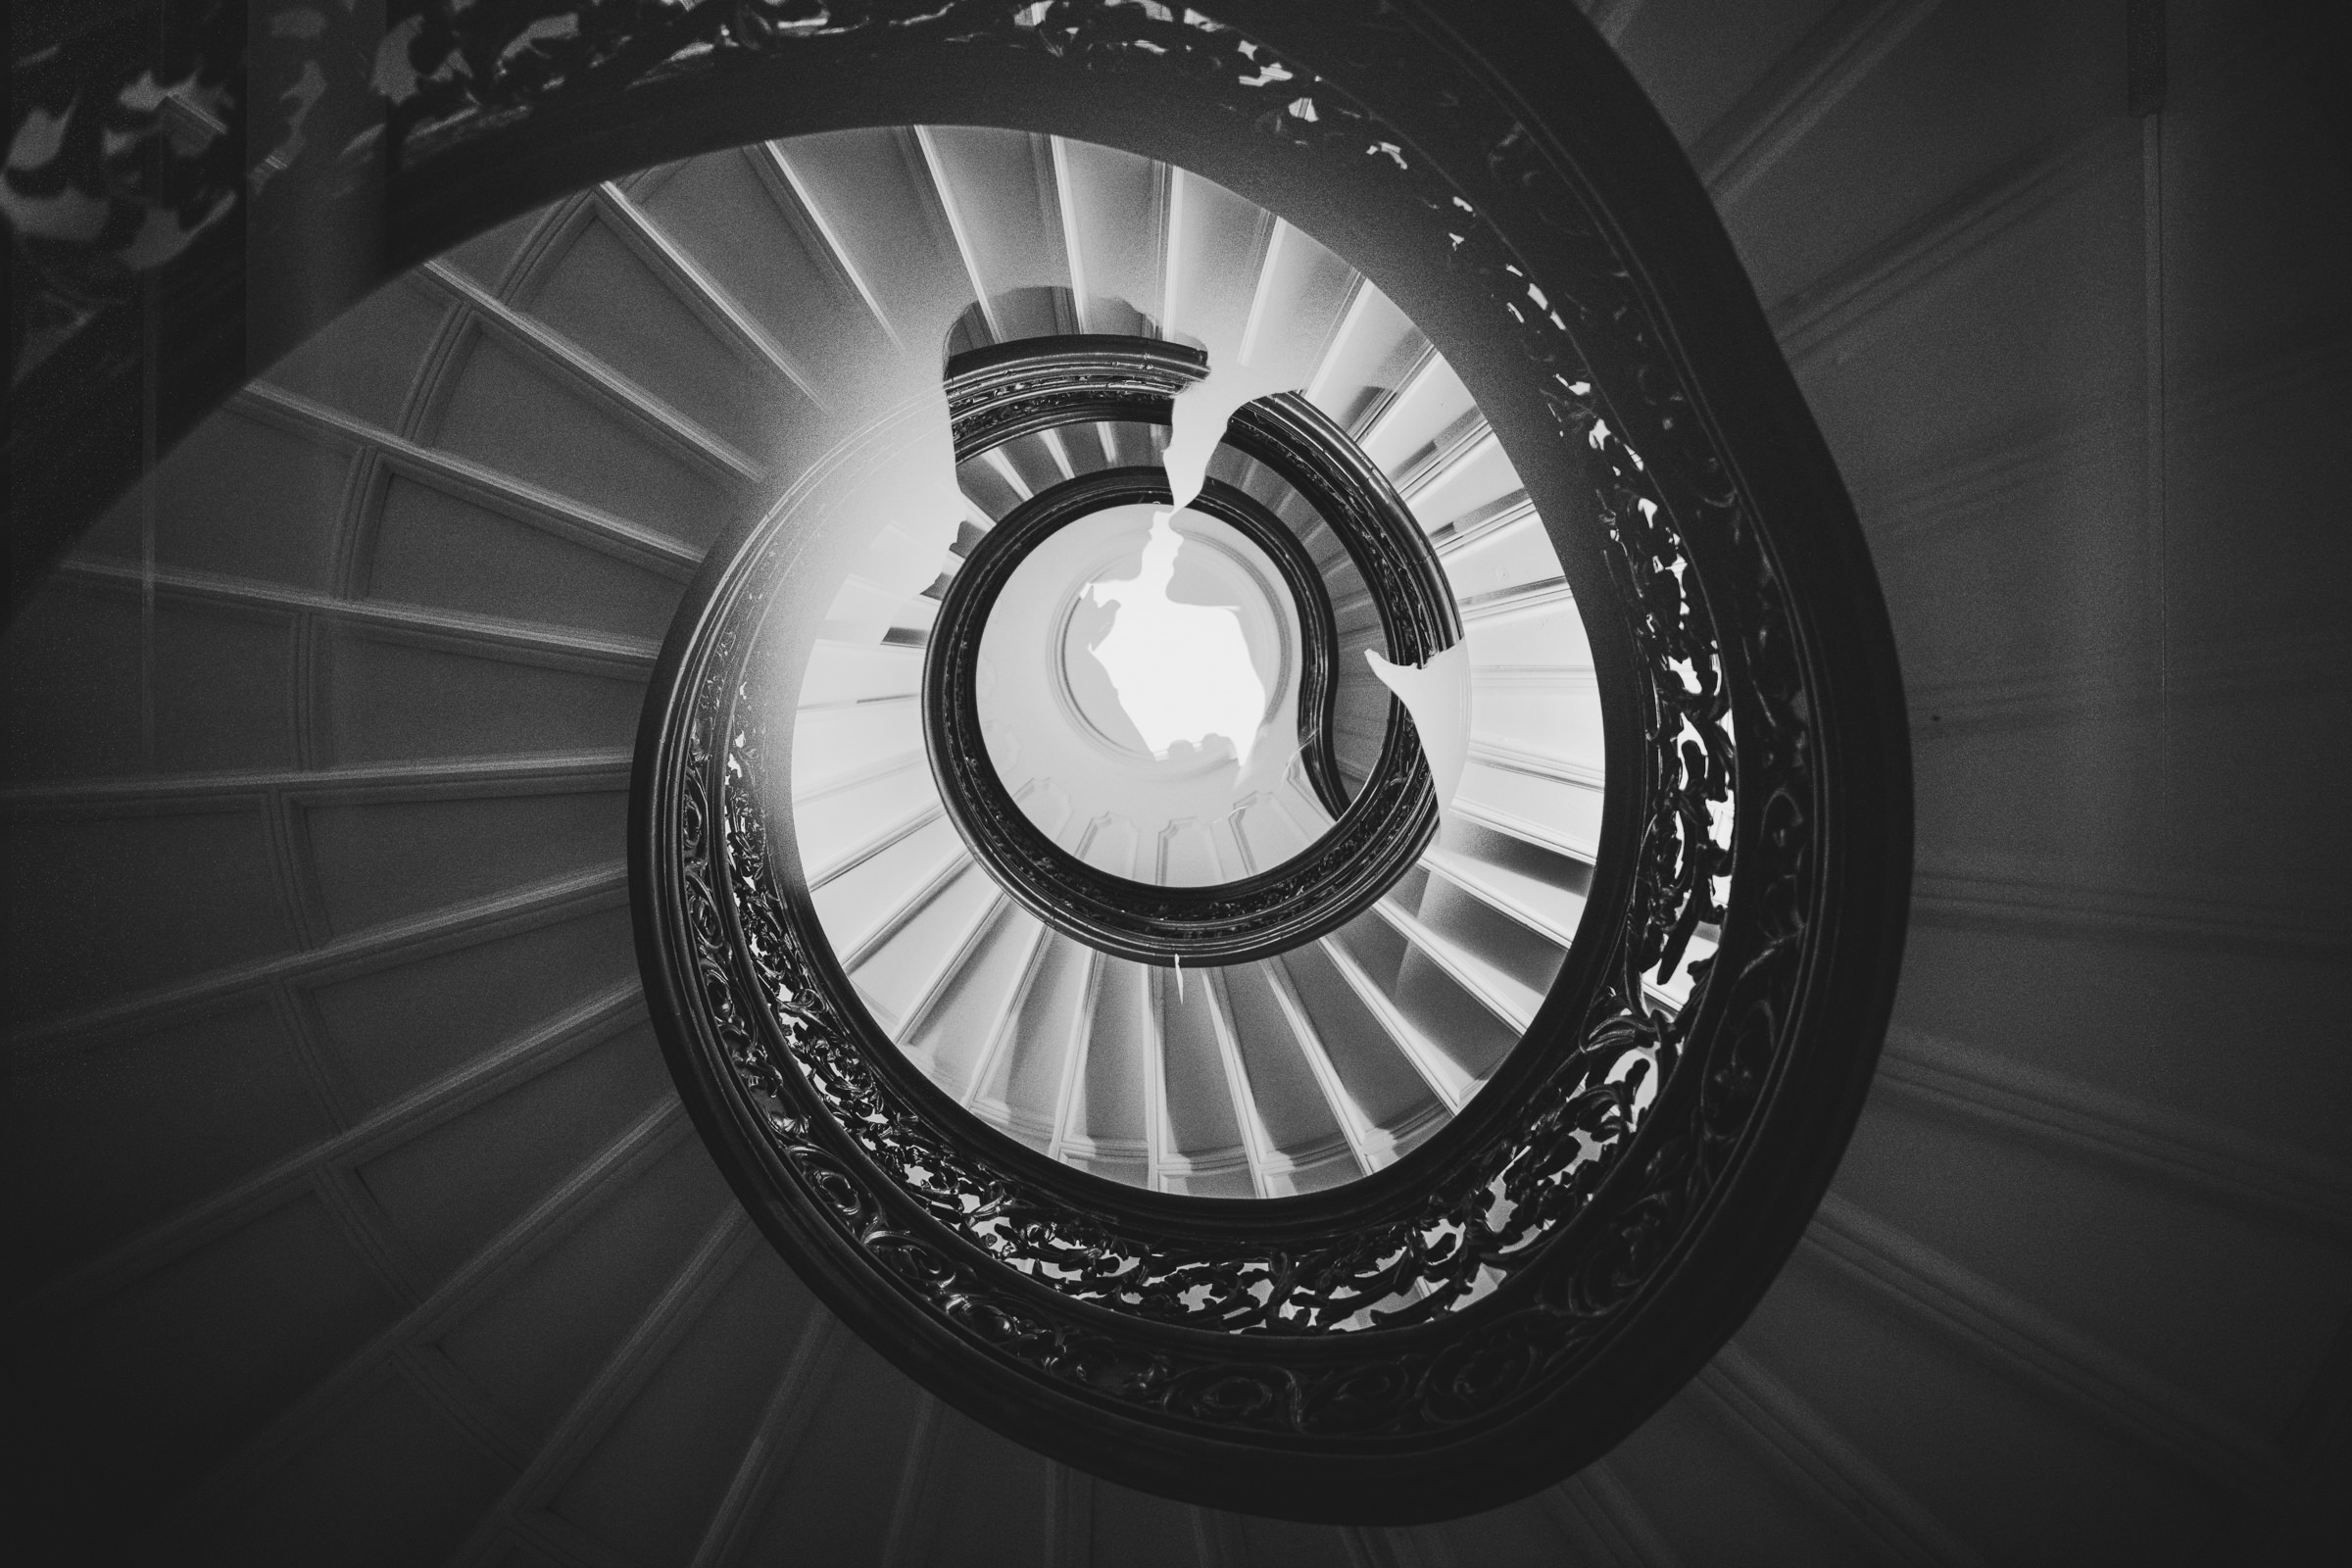 Multiple exposure couple silhouette on circular stairway by Sam Hurd - DC